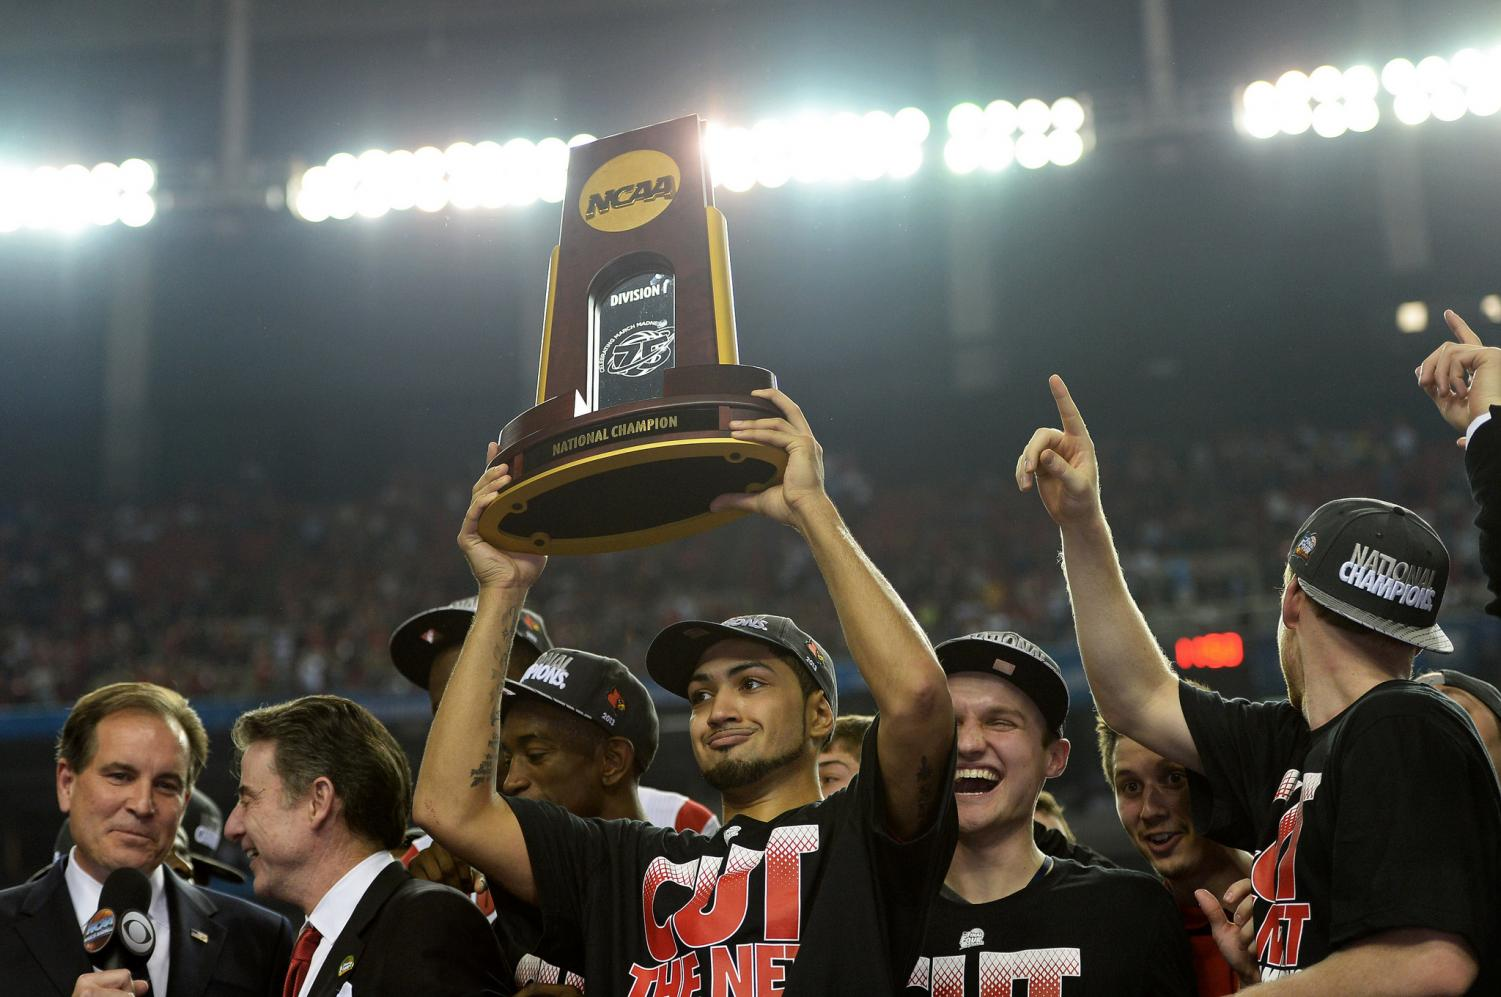 Louisville point guard Peyton Siva holds up the winning trophy after his team won the Division I NCAA men's basketball championship in 2013. The title has since been vacated after the program was discovered to have committed multiple recruitment violations.